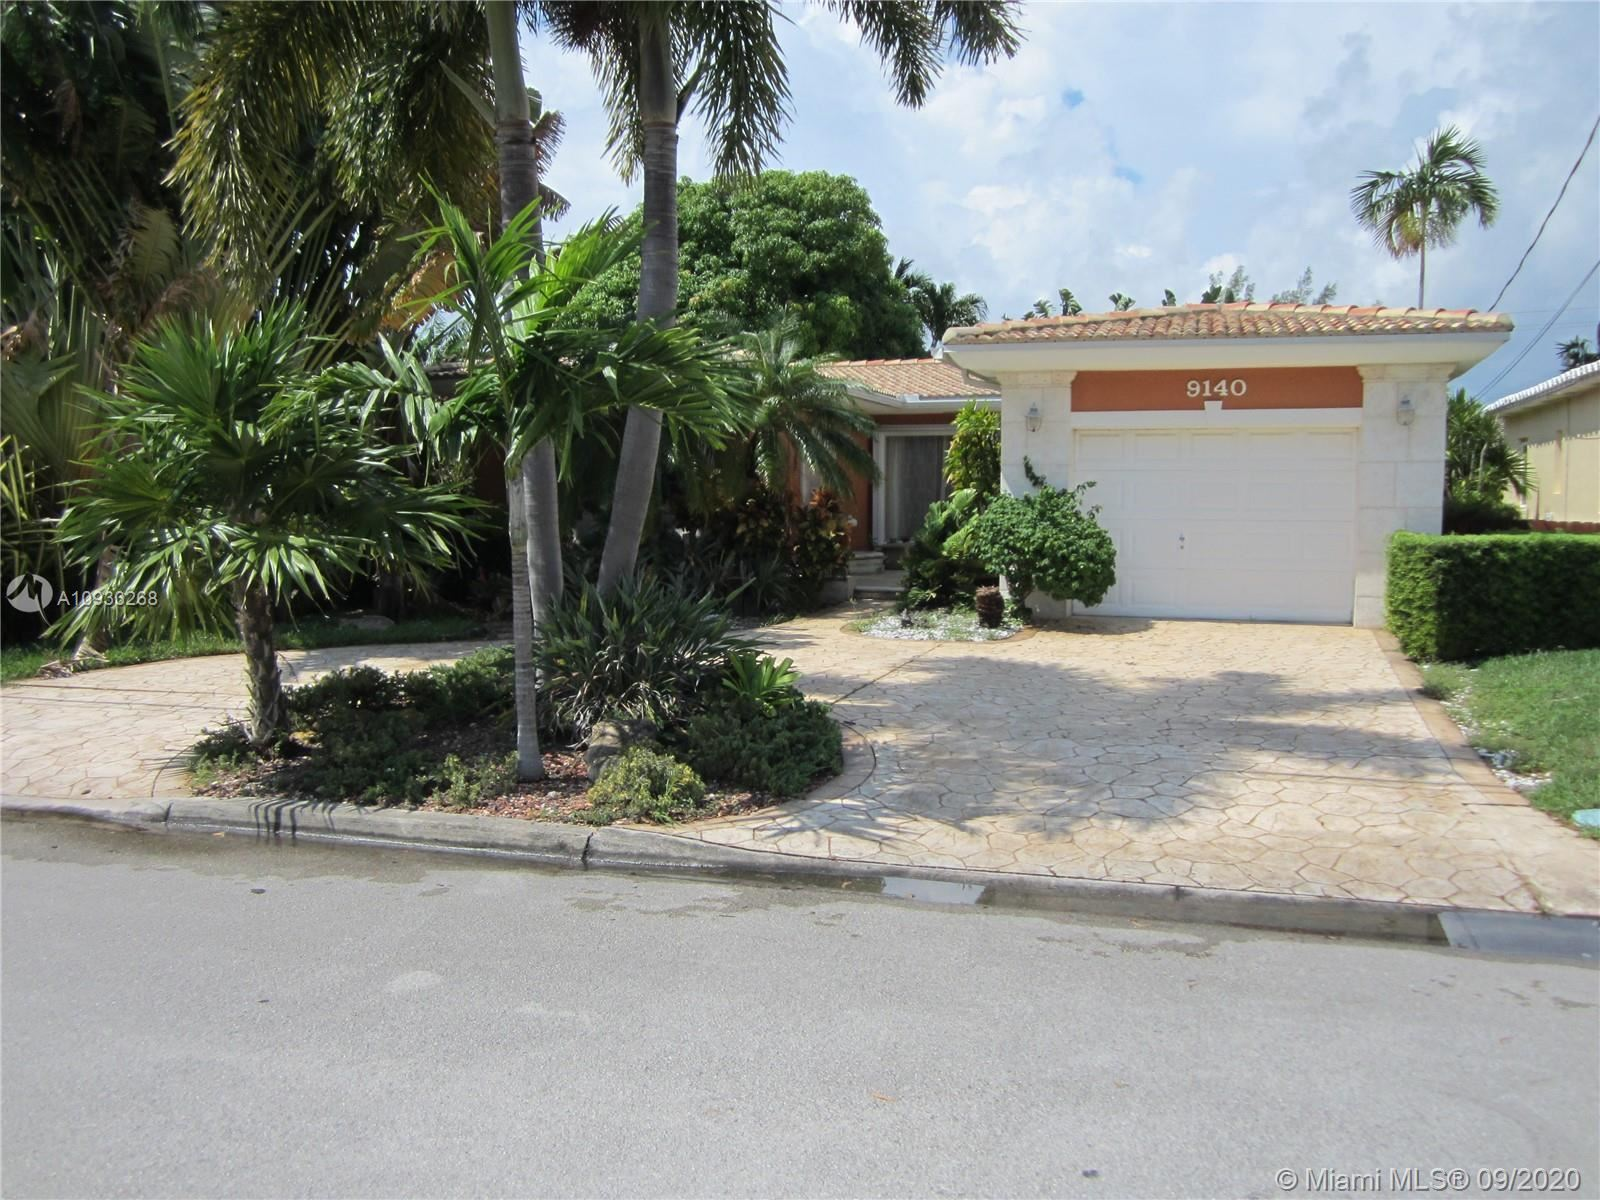 9140 Abbott Ave, Surfside, FL 33154 - #: A10933268